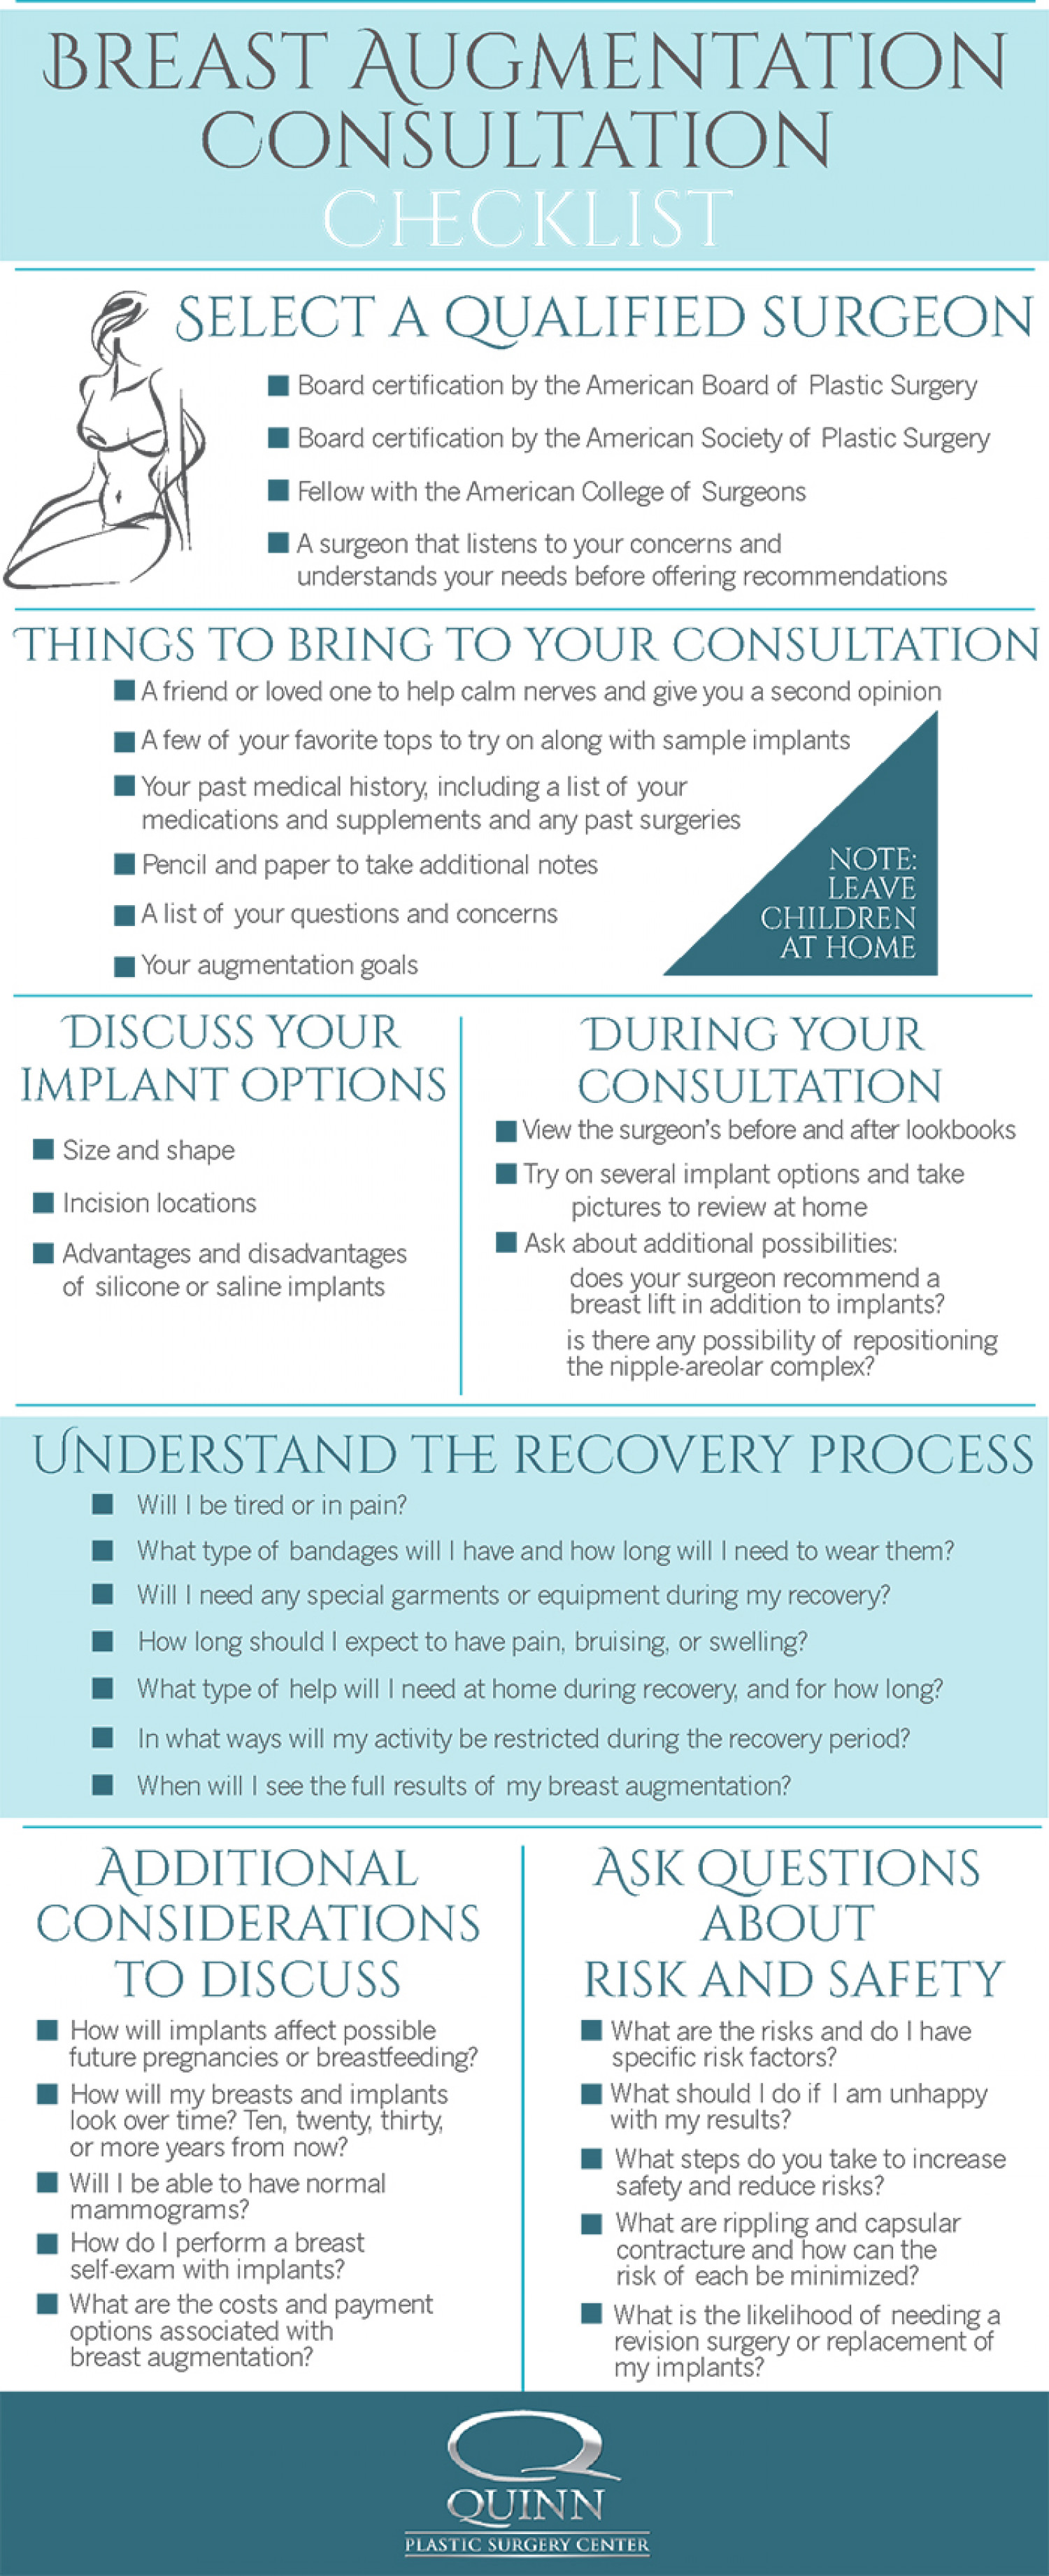 Breast Augmentation Checklist Infographic